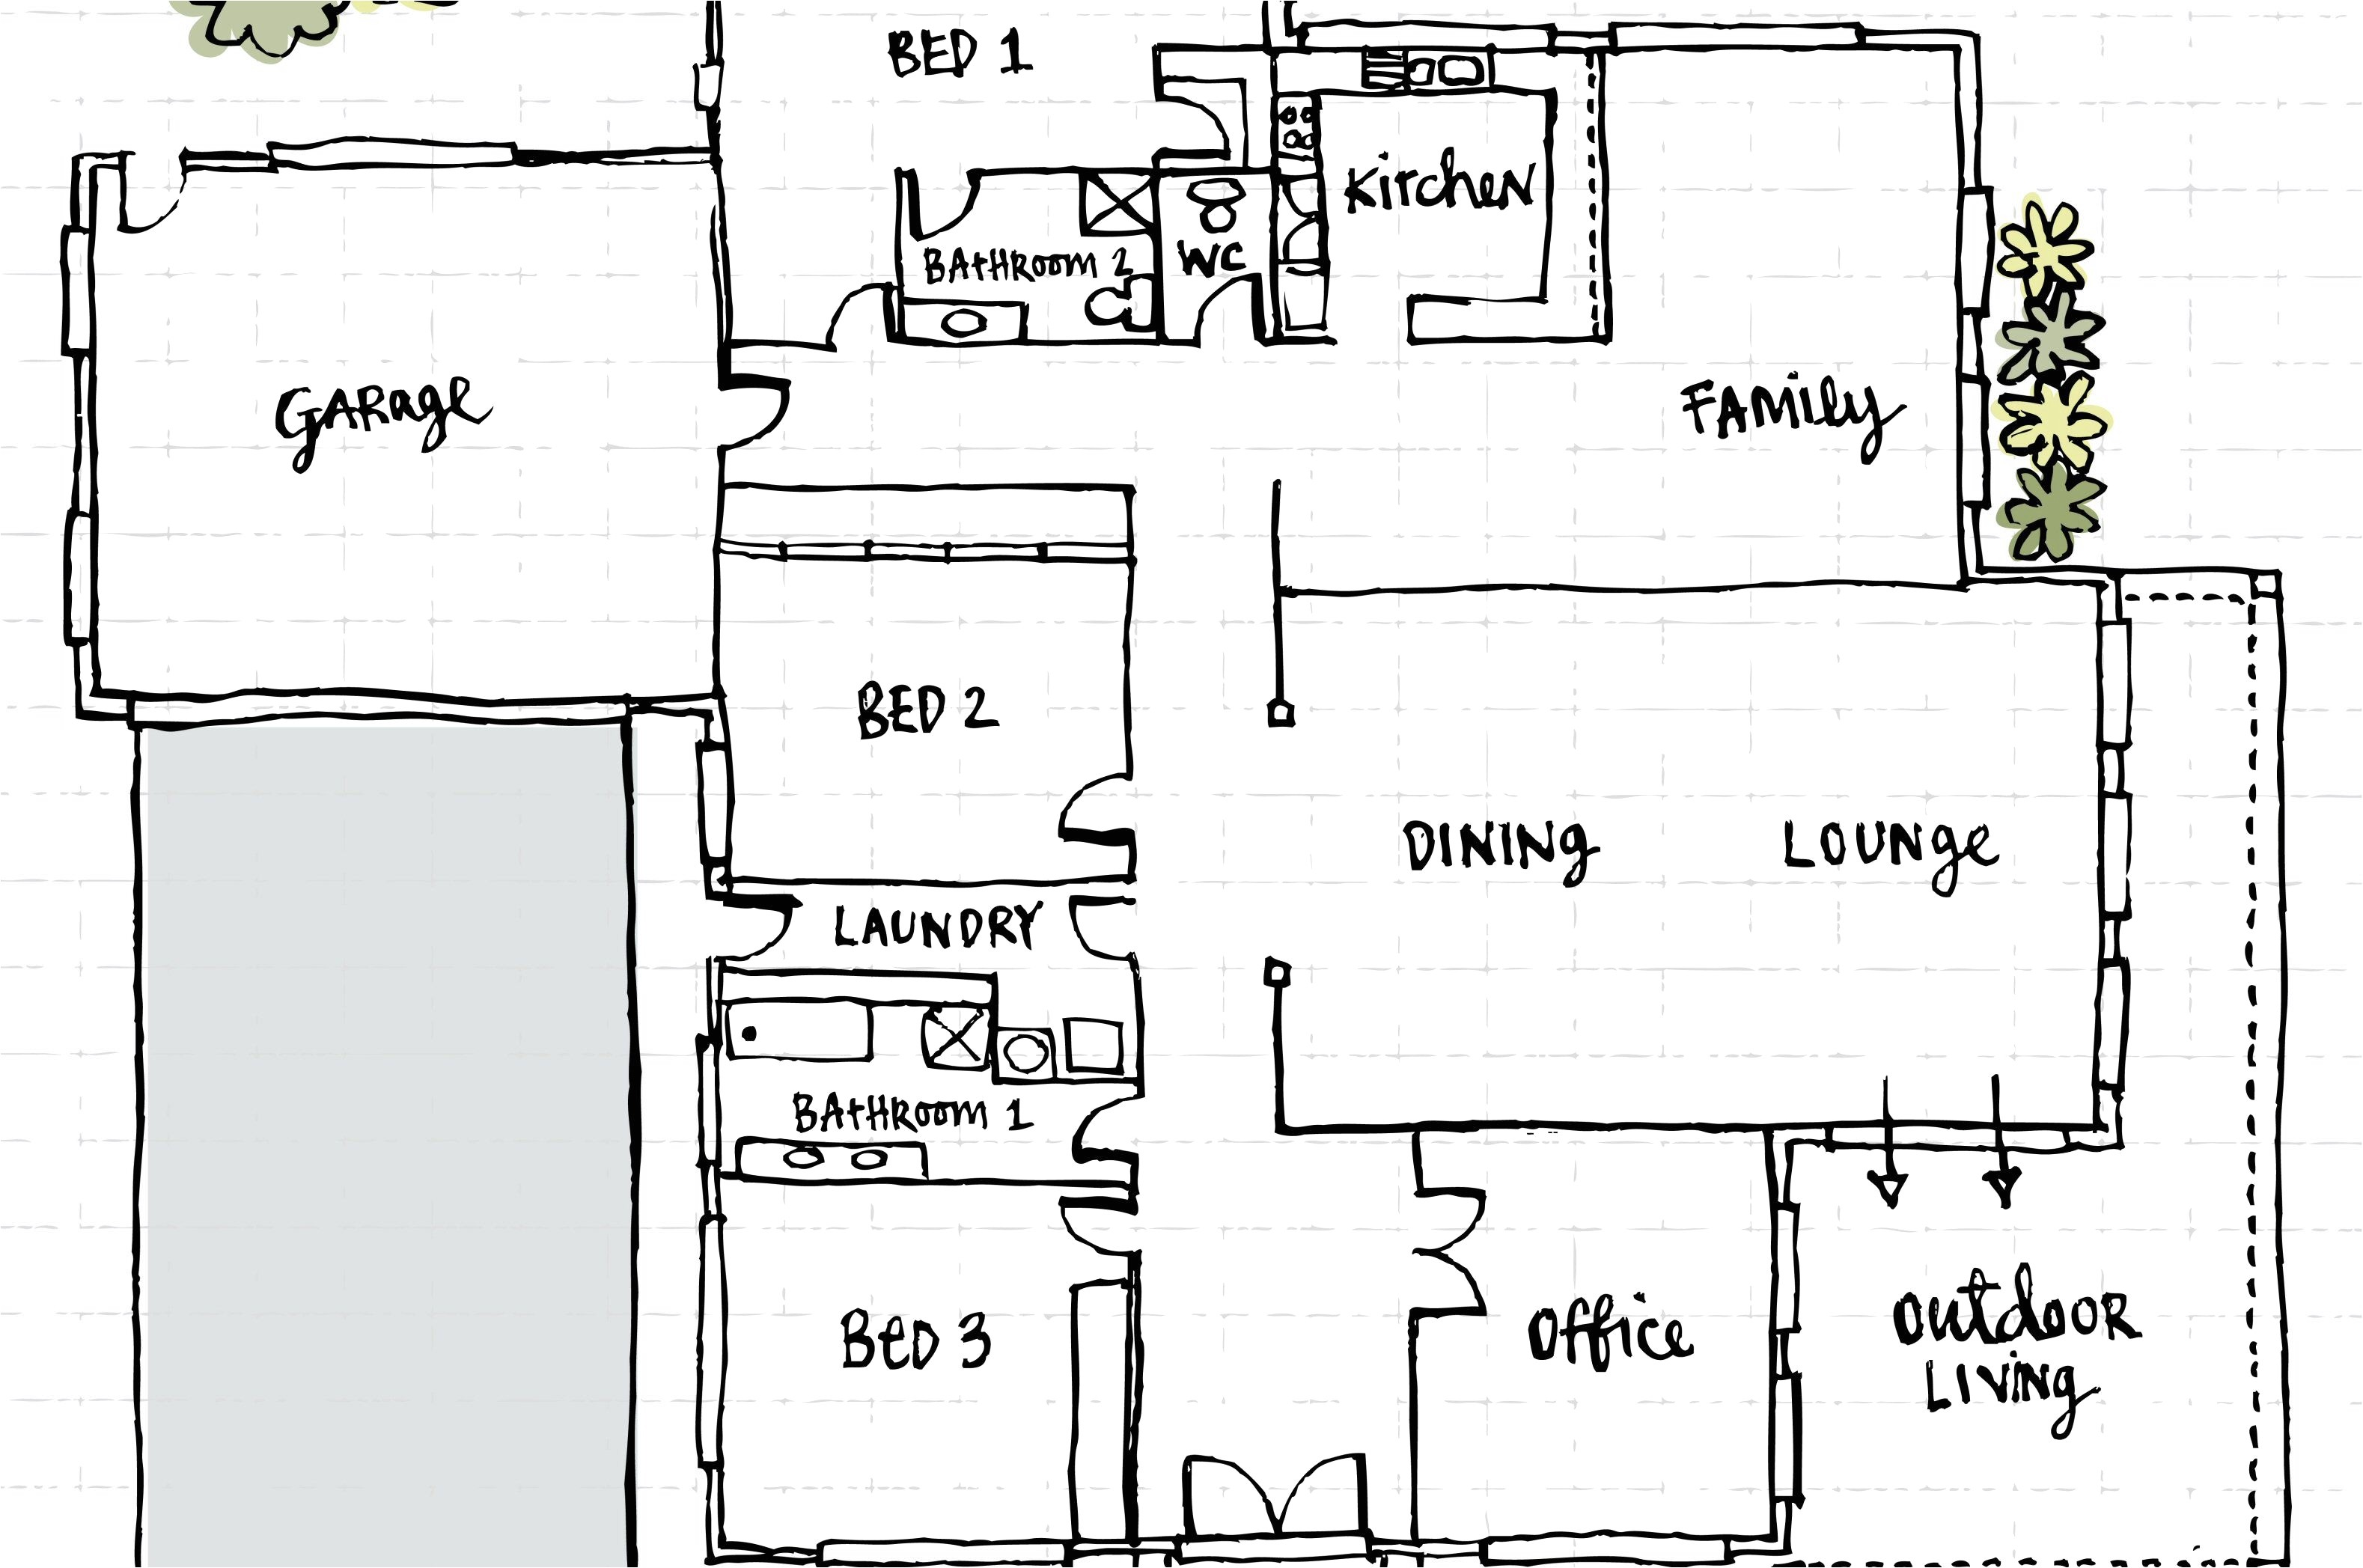 i need to draw a floor plan of my house